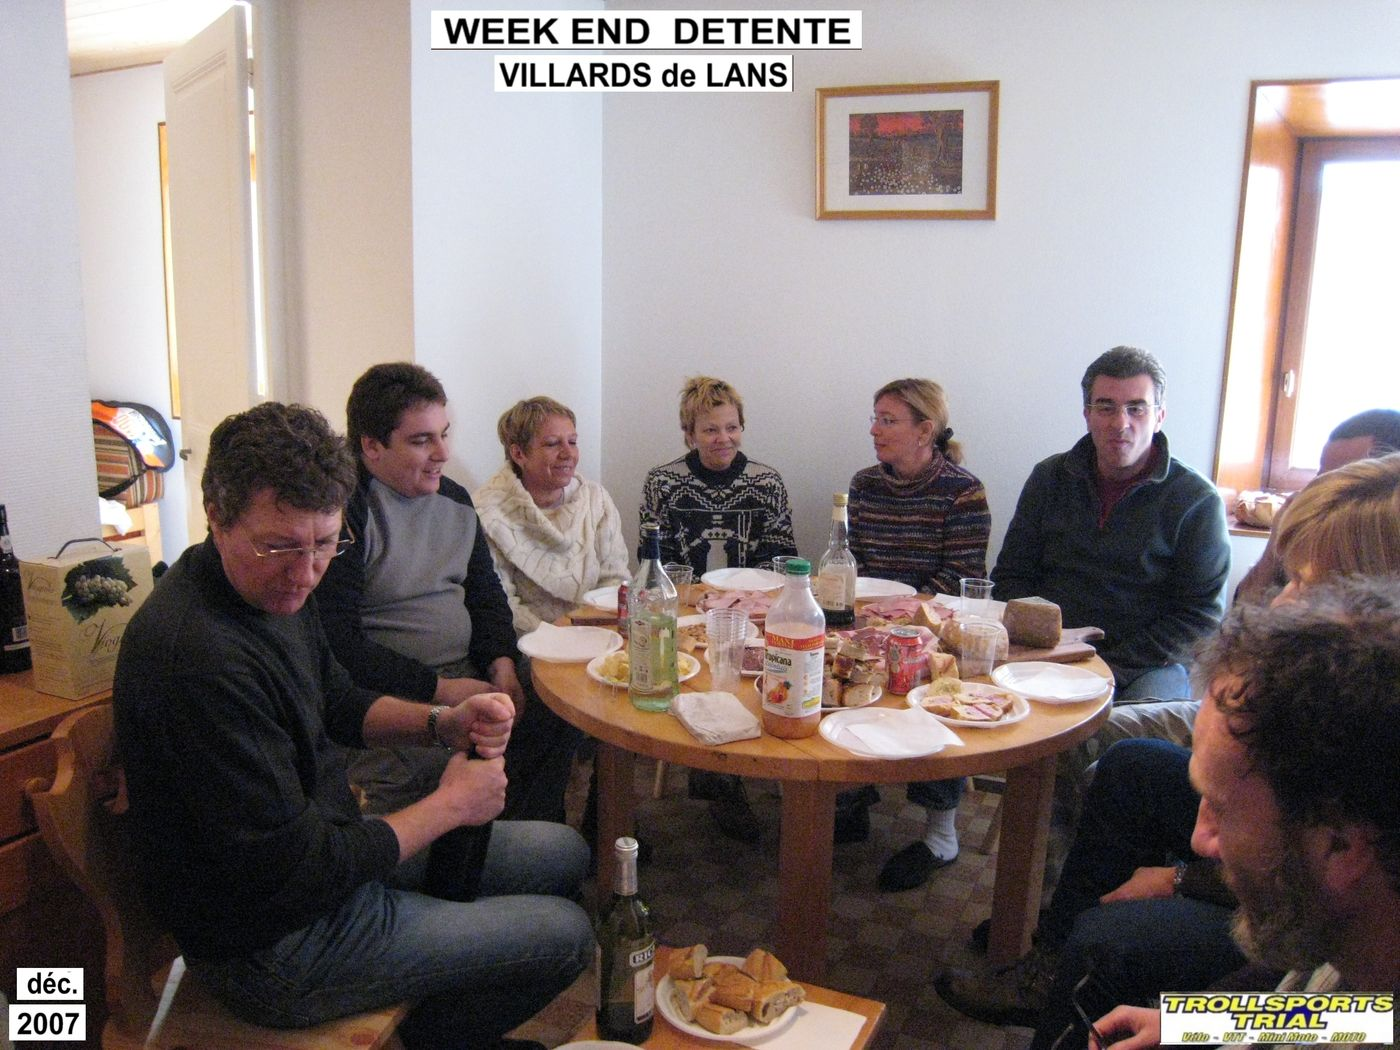 week_end_detente/img/2007 12 villards 12.jpg